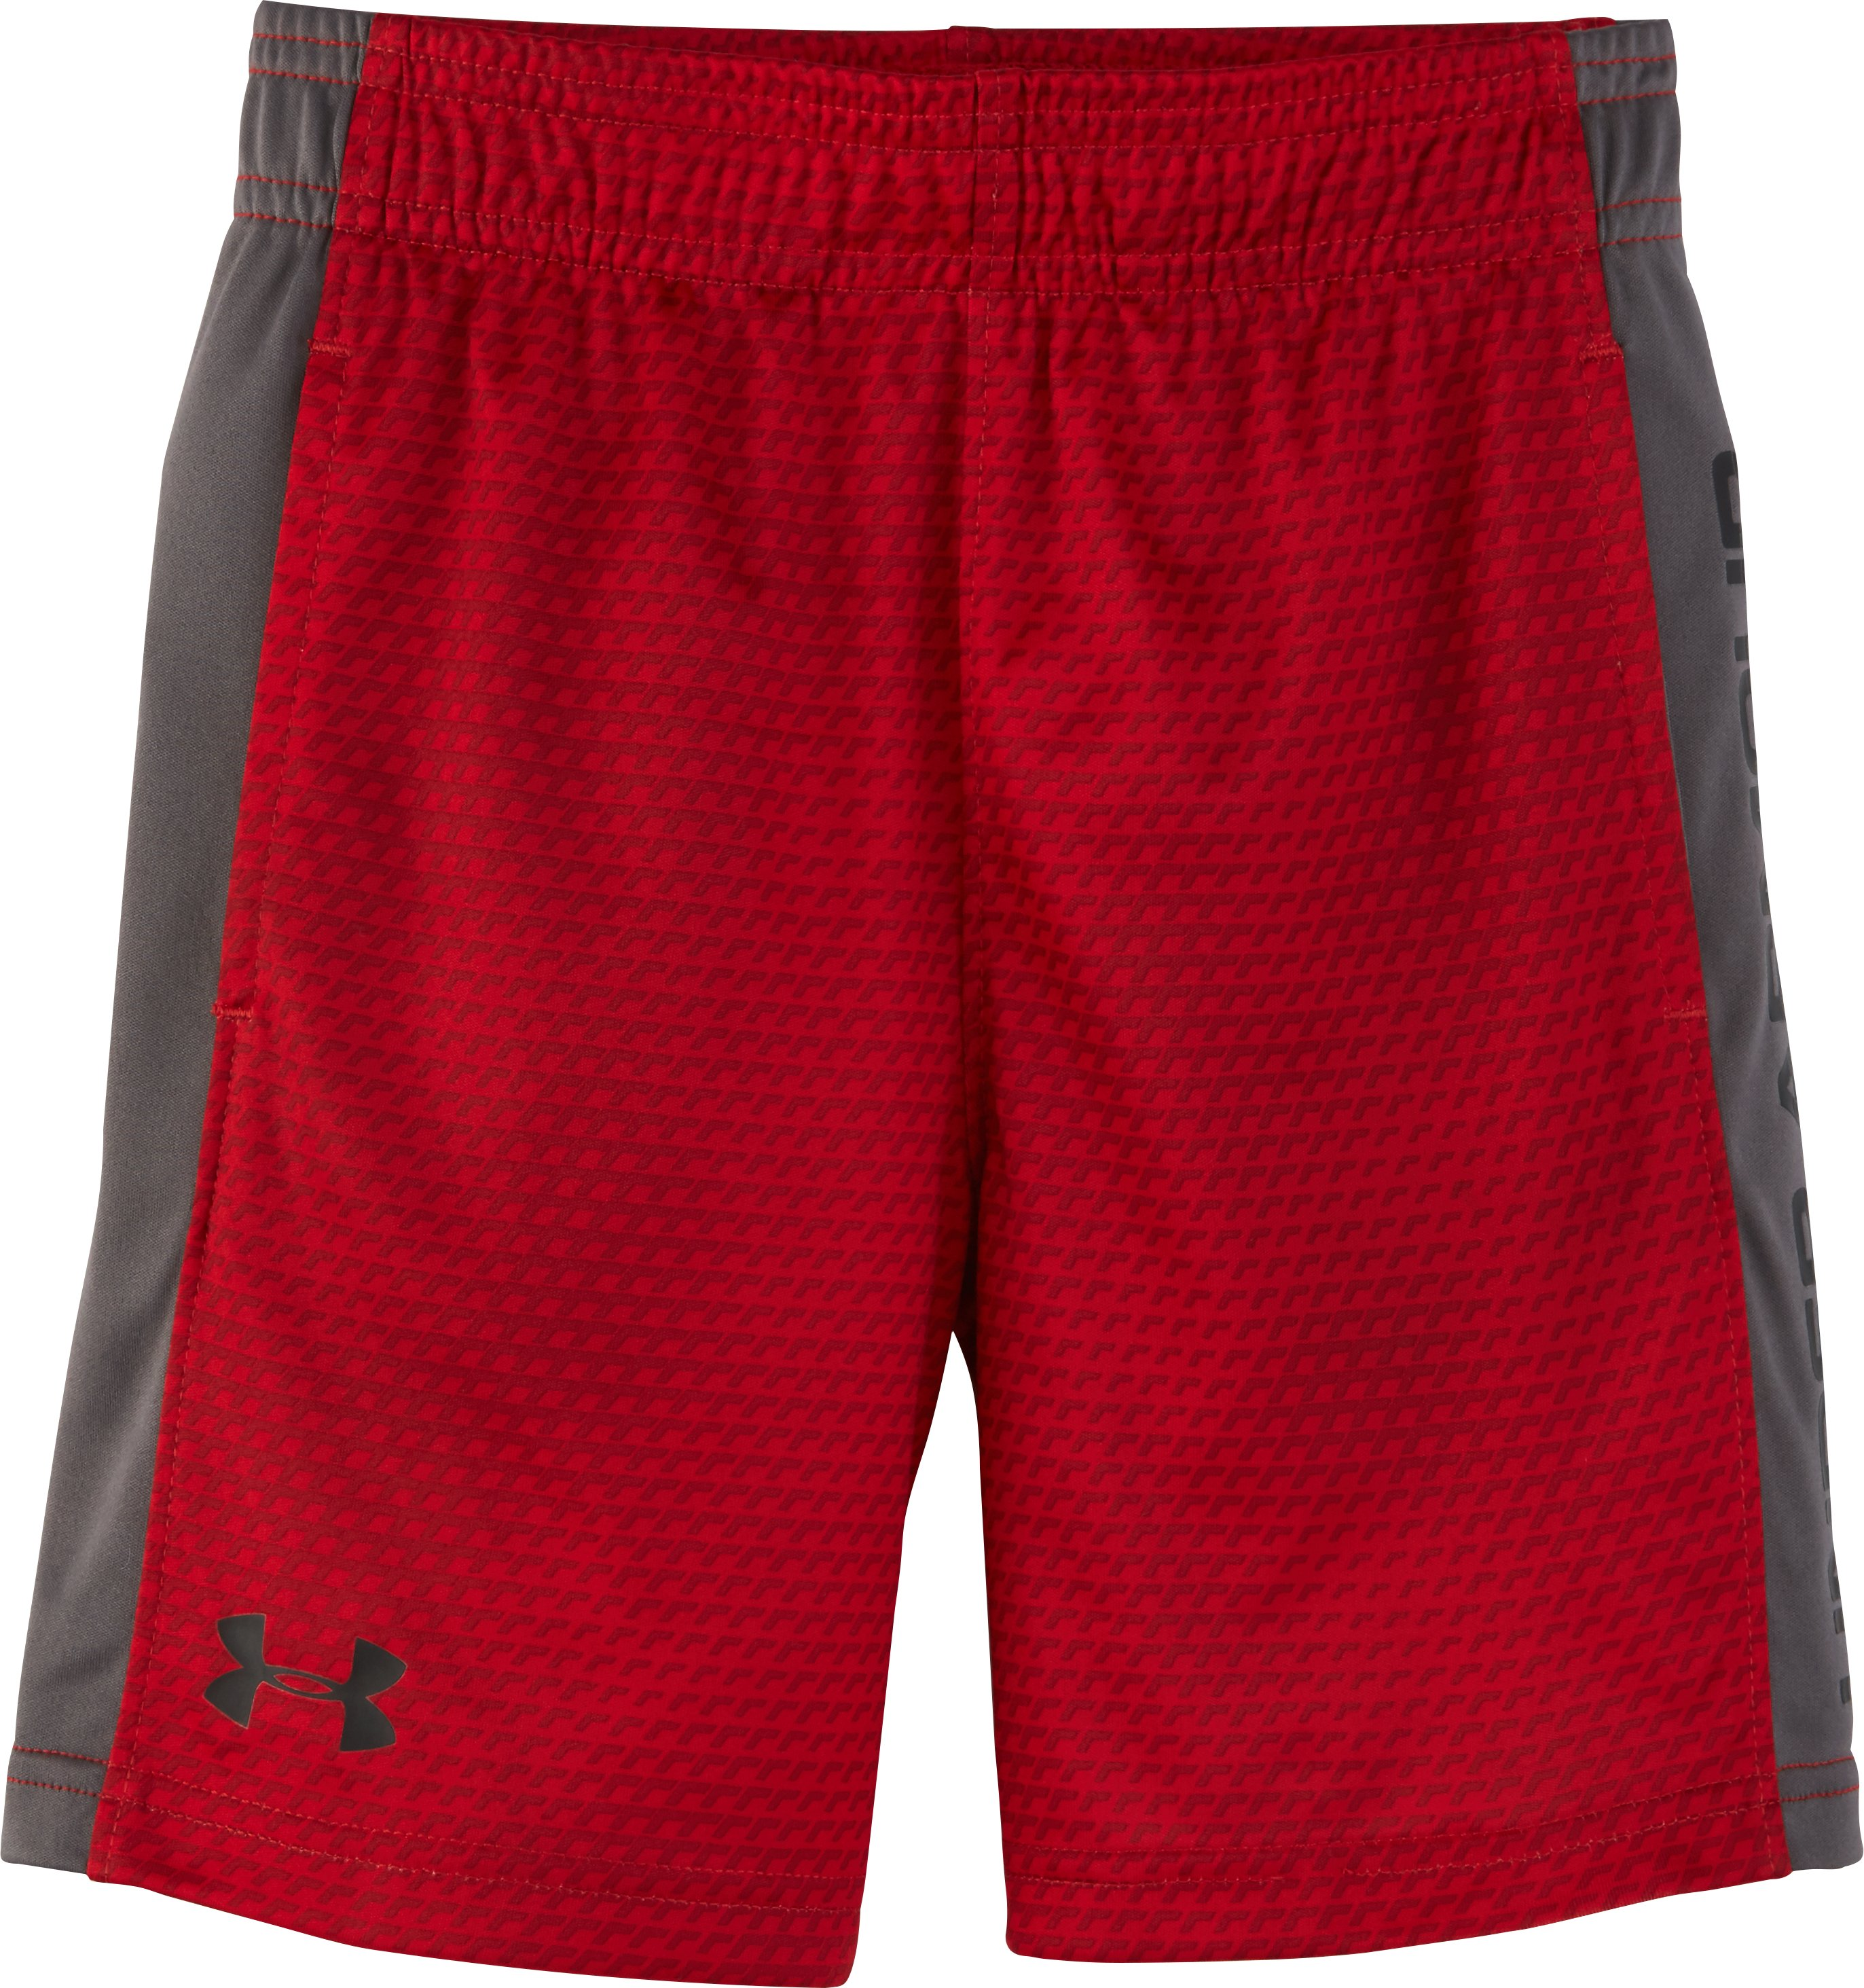 Boys' Pre-School UA Gameday Eliminator Shorts, Red, Laydown